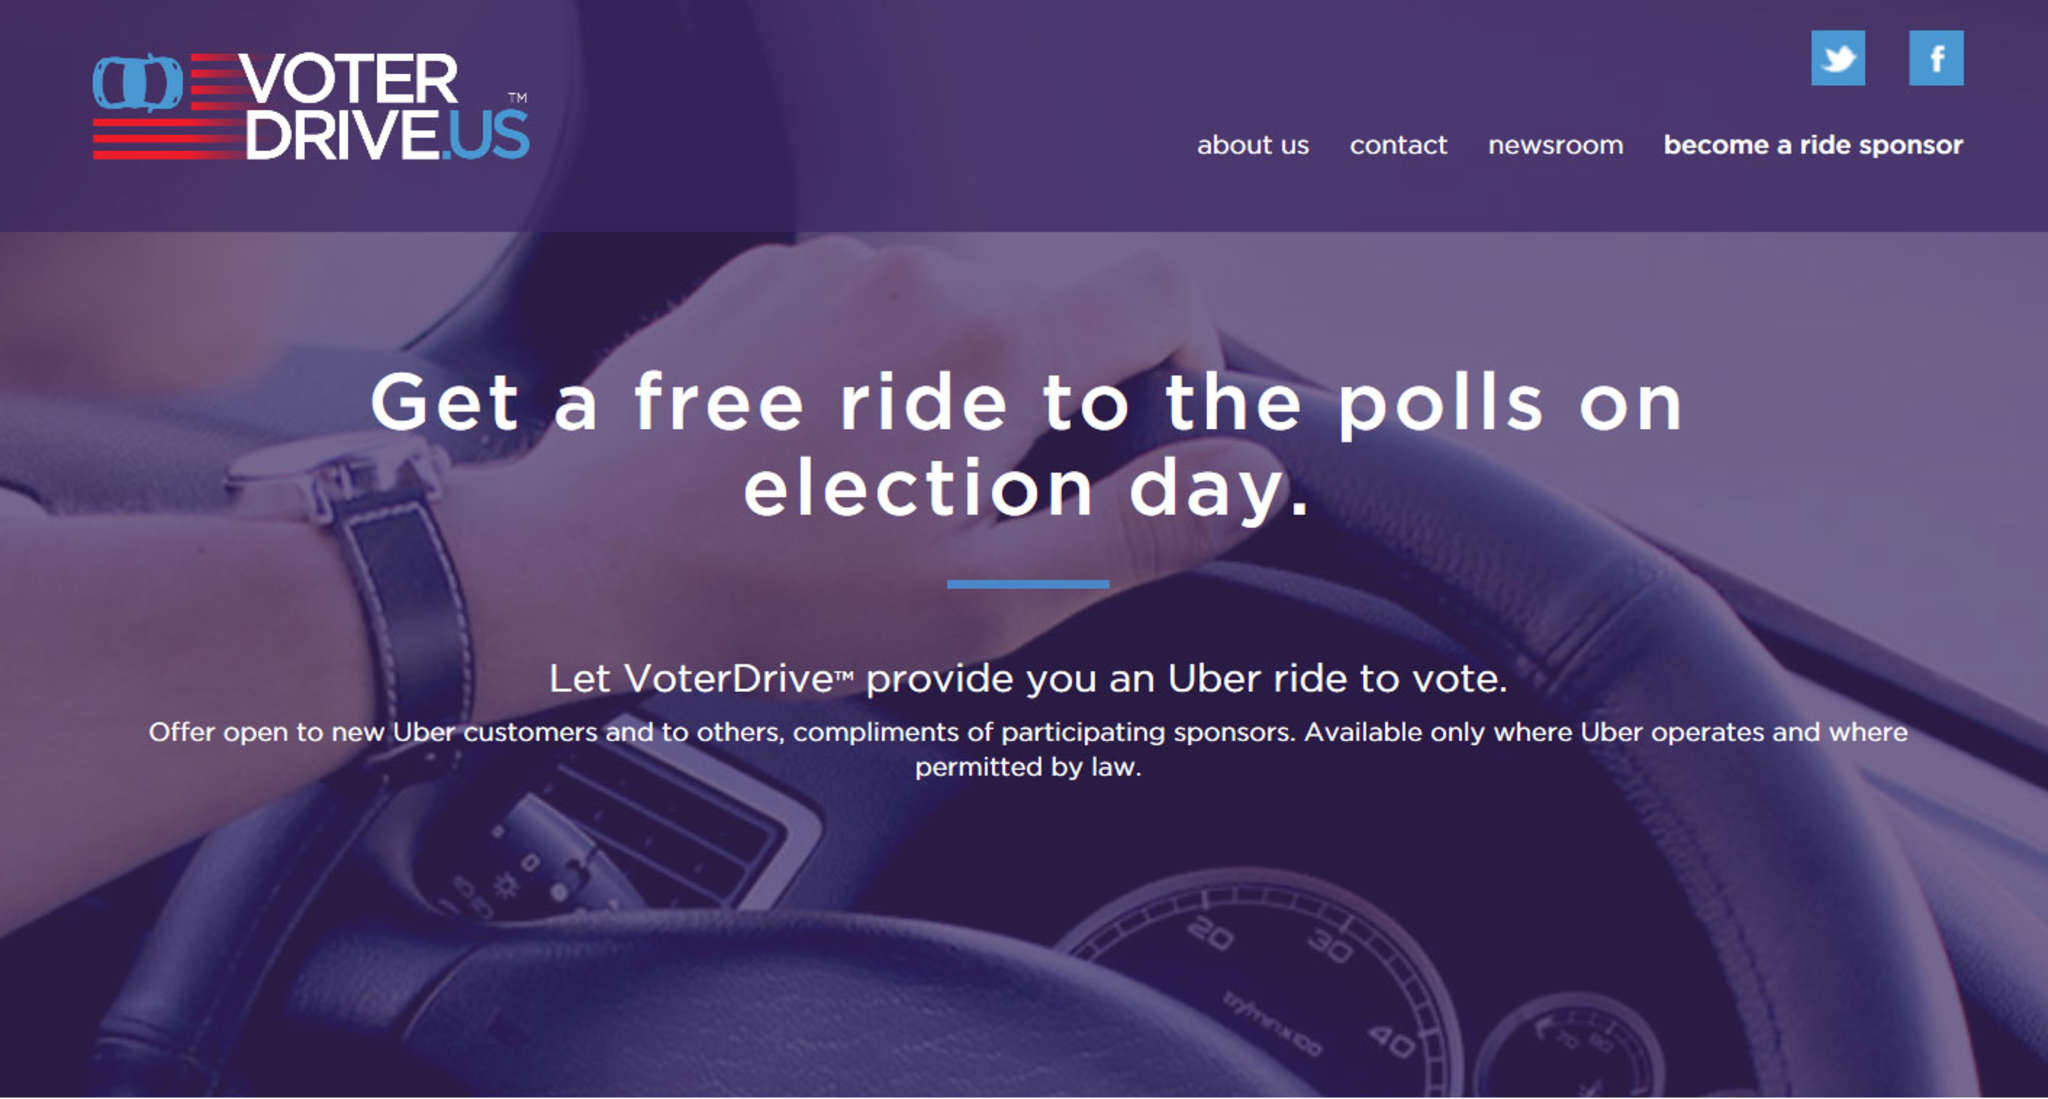 The VoterDrive.us home page, where new Uber users can sign up for a free ride to the polls. To get home, voters can use their new Uber membership to order and pay for a ride.